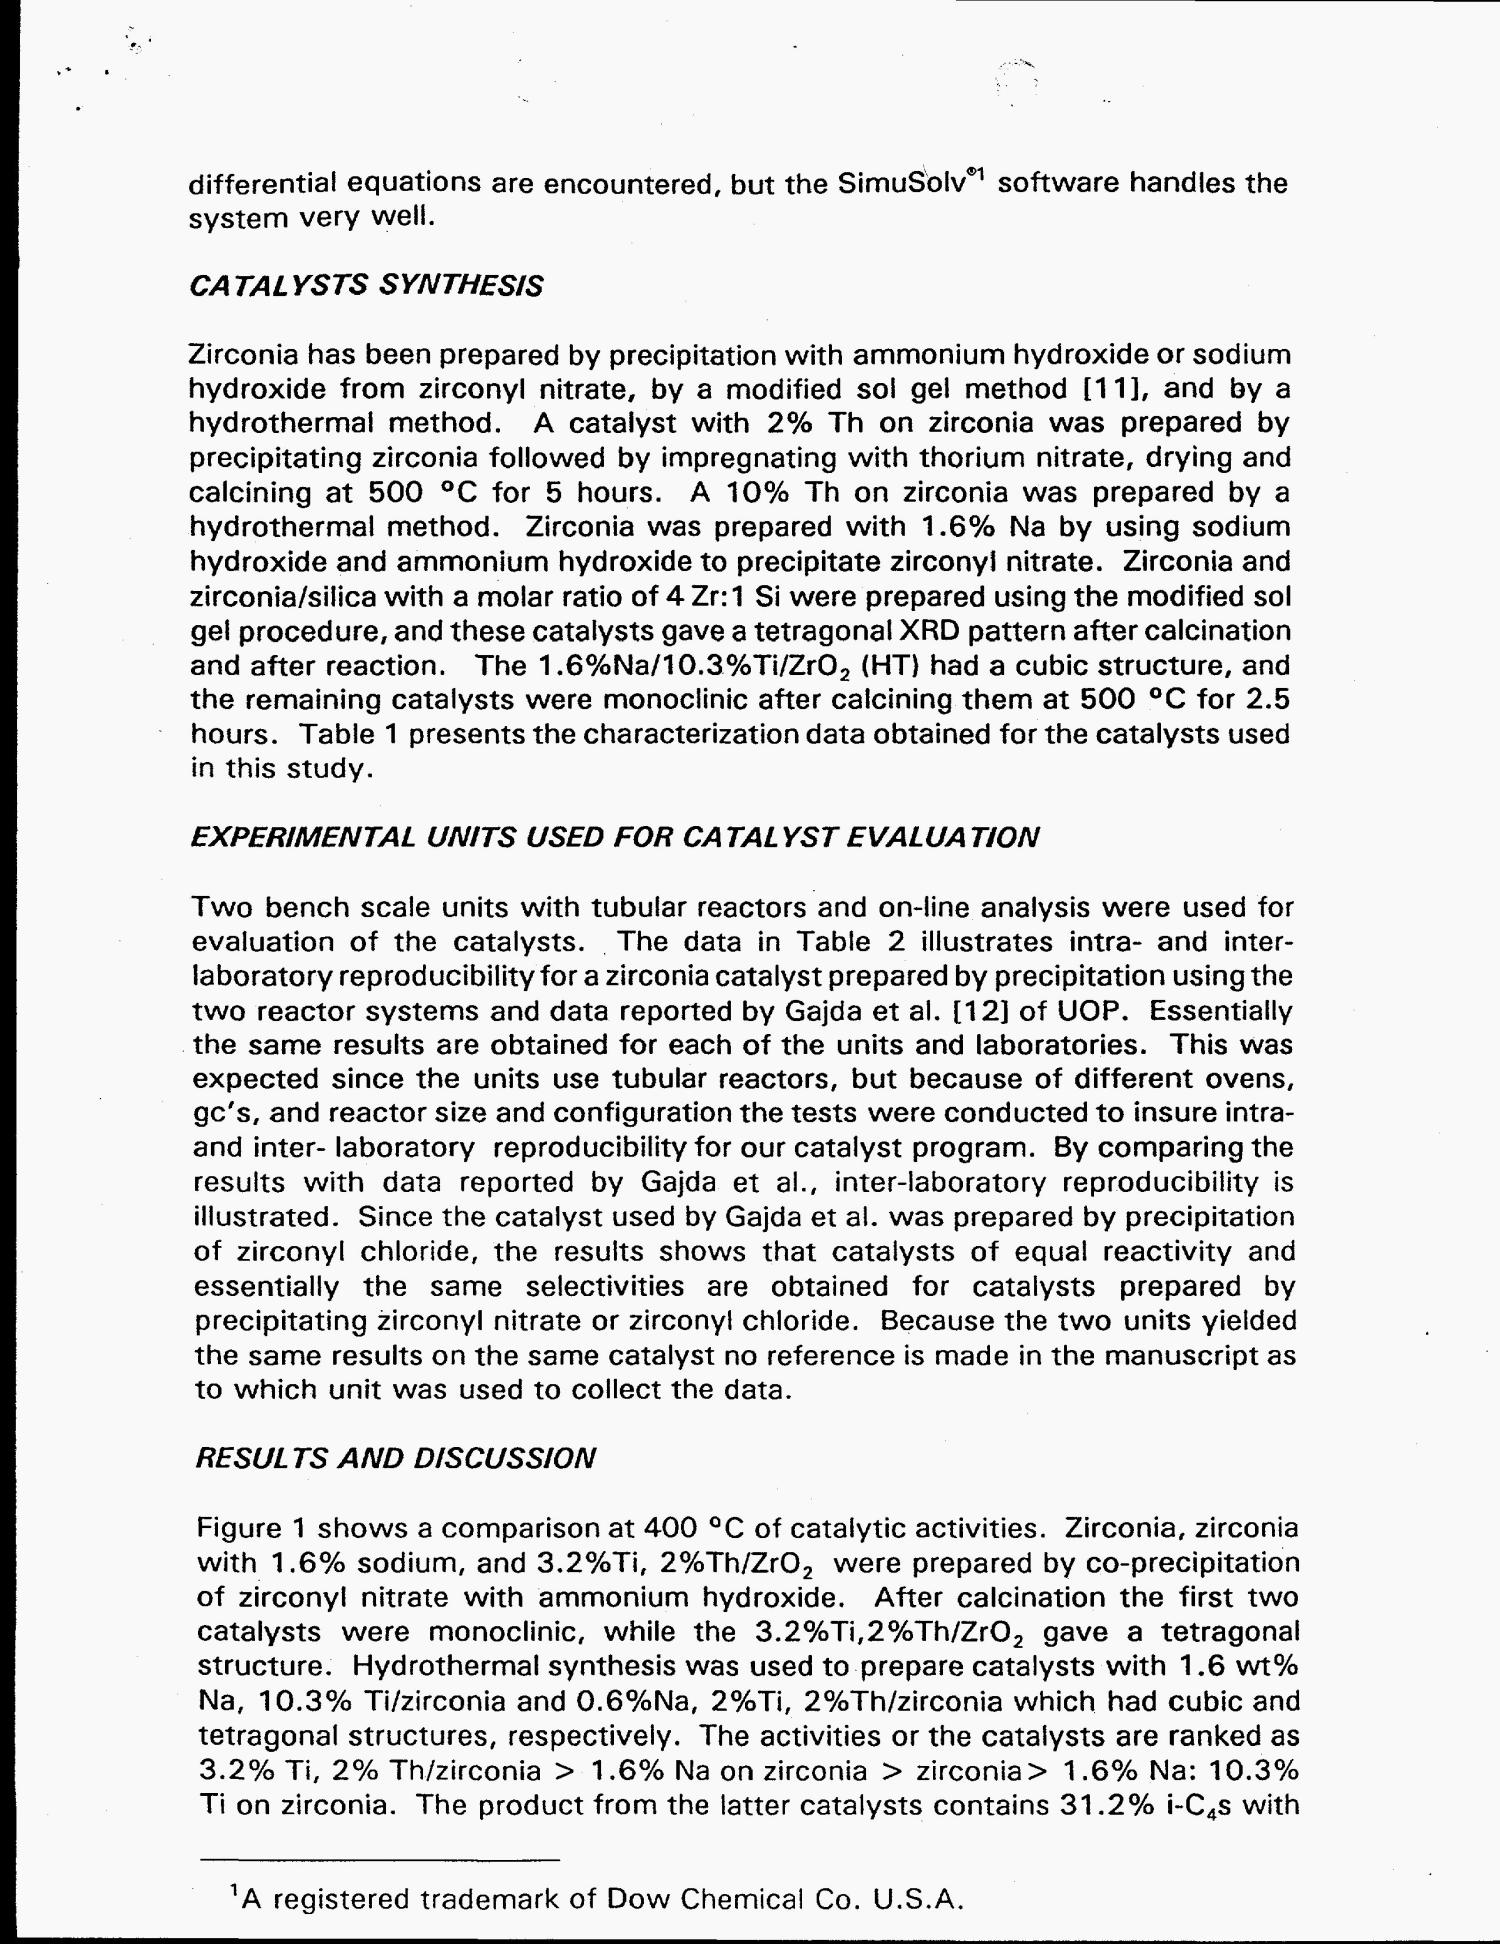 Catalyst and process development for synthesis gas conversion to isobutylene. Quarterly report, July 1, 1992--September 30, 1992                                                                                                      [Sequence #]: 4 of 36